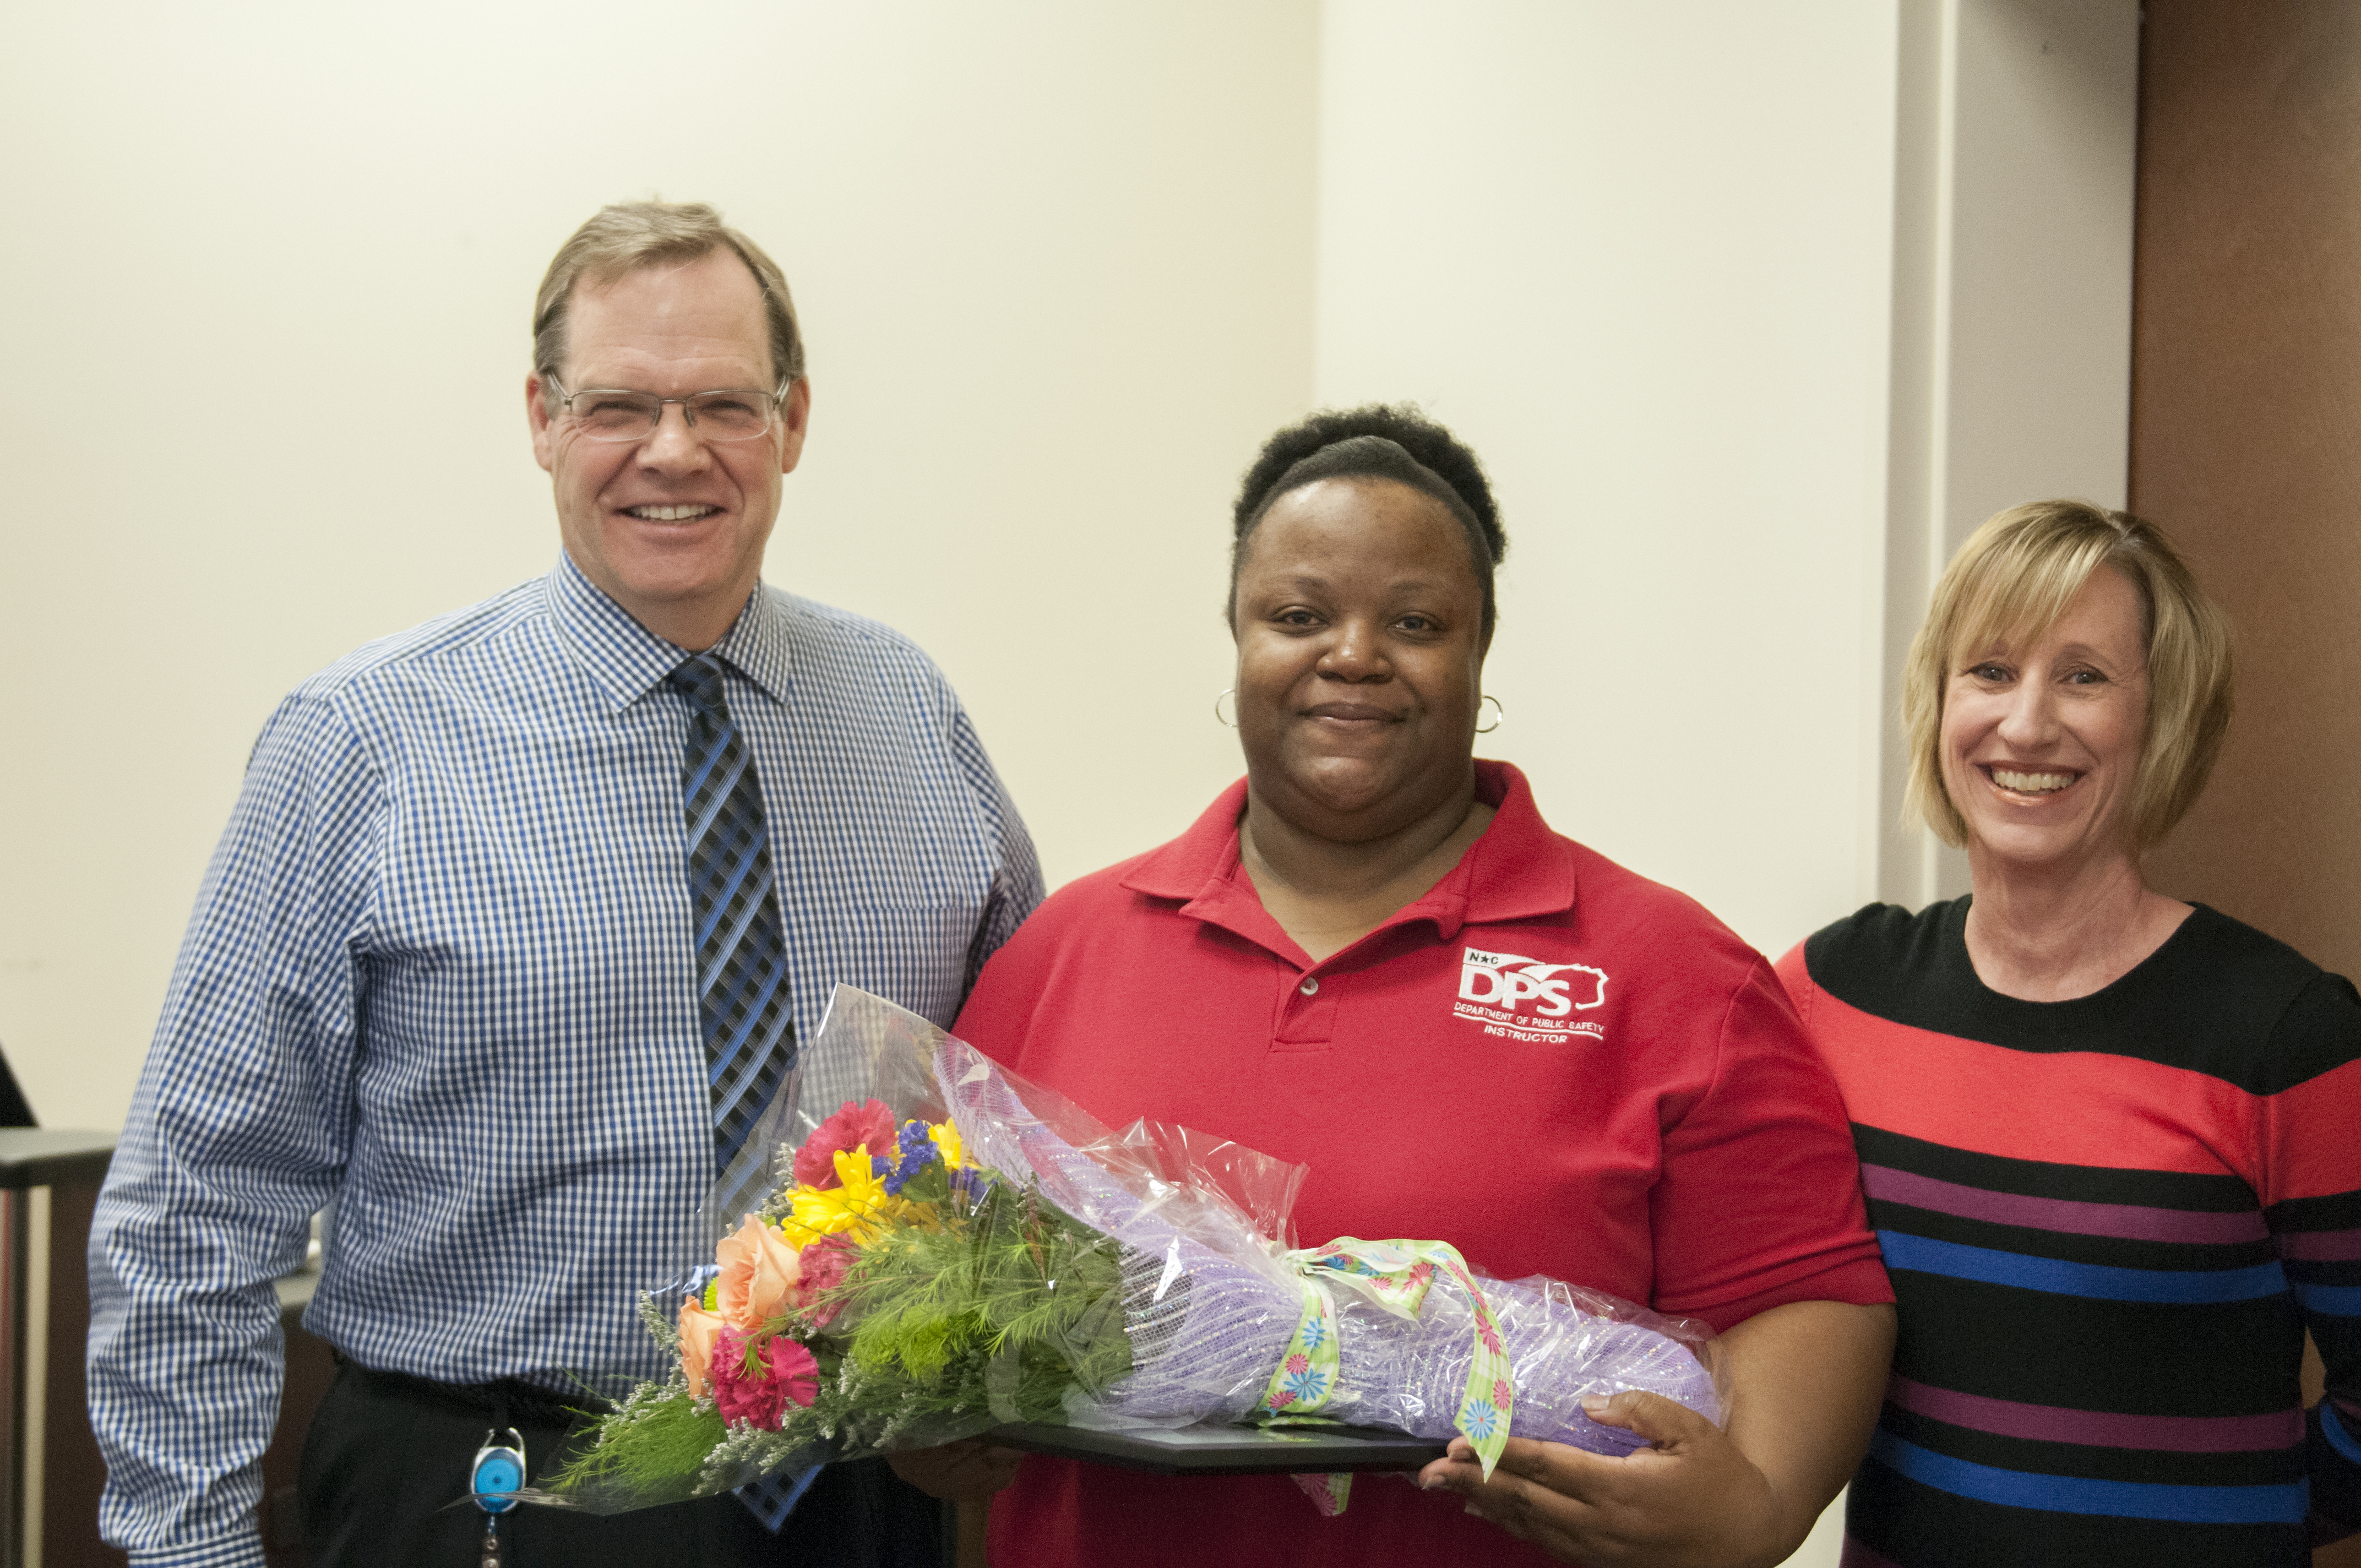 LaTonya Middleton and coworkers presenting flowers